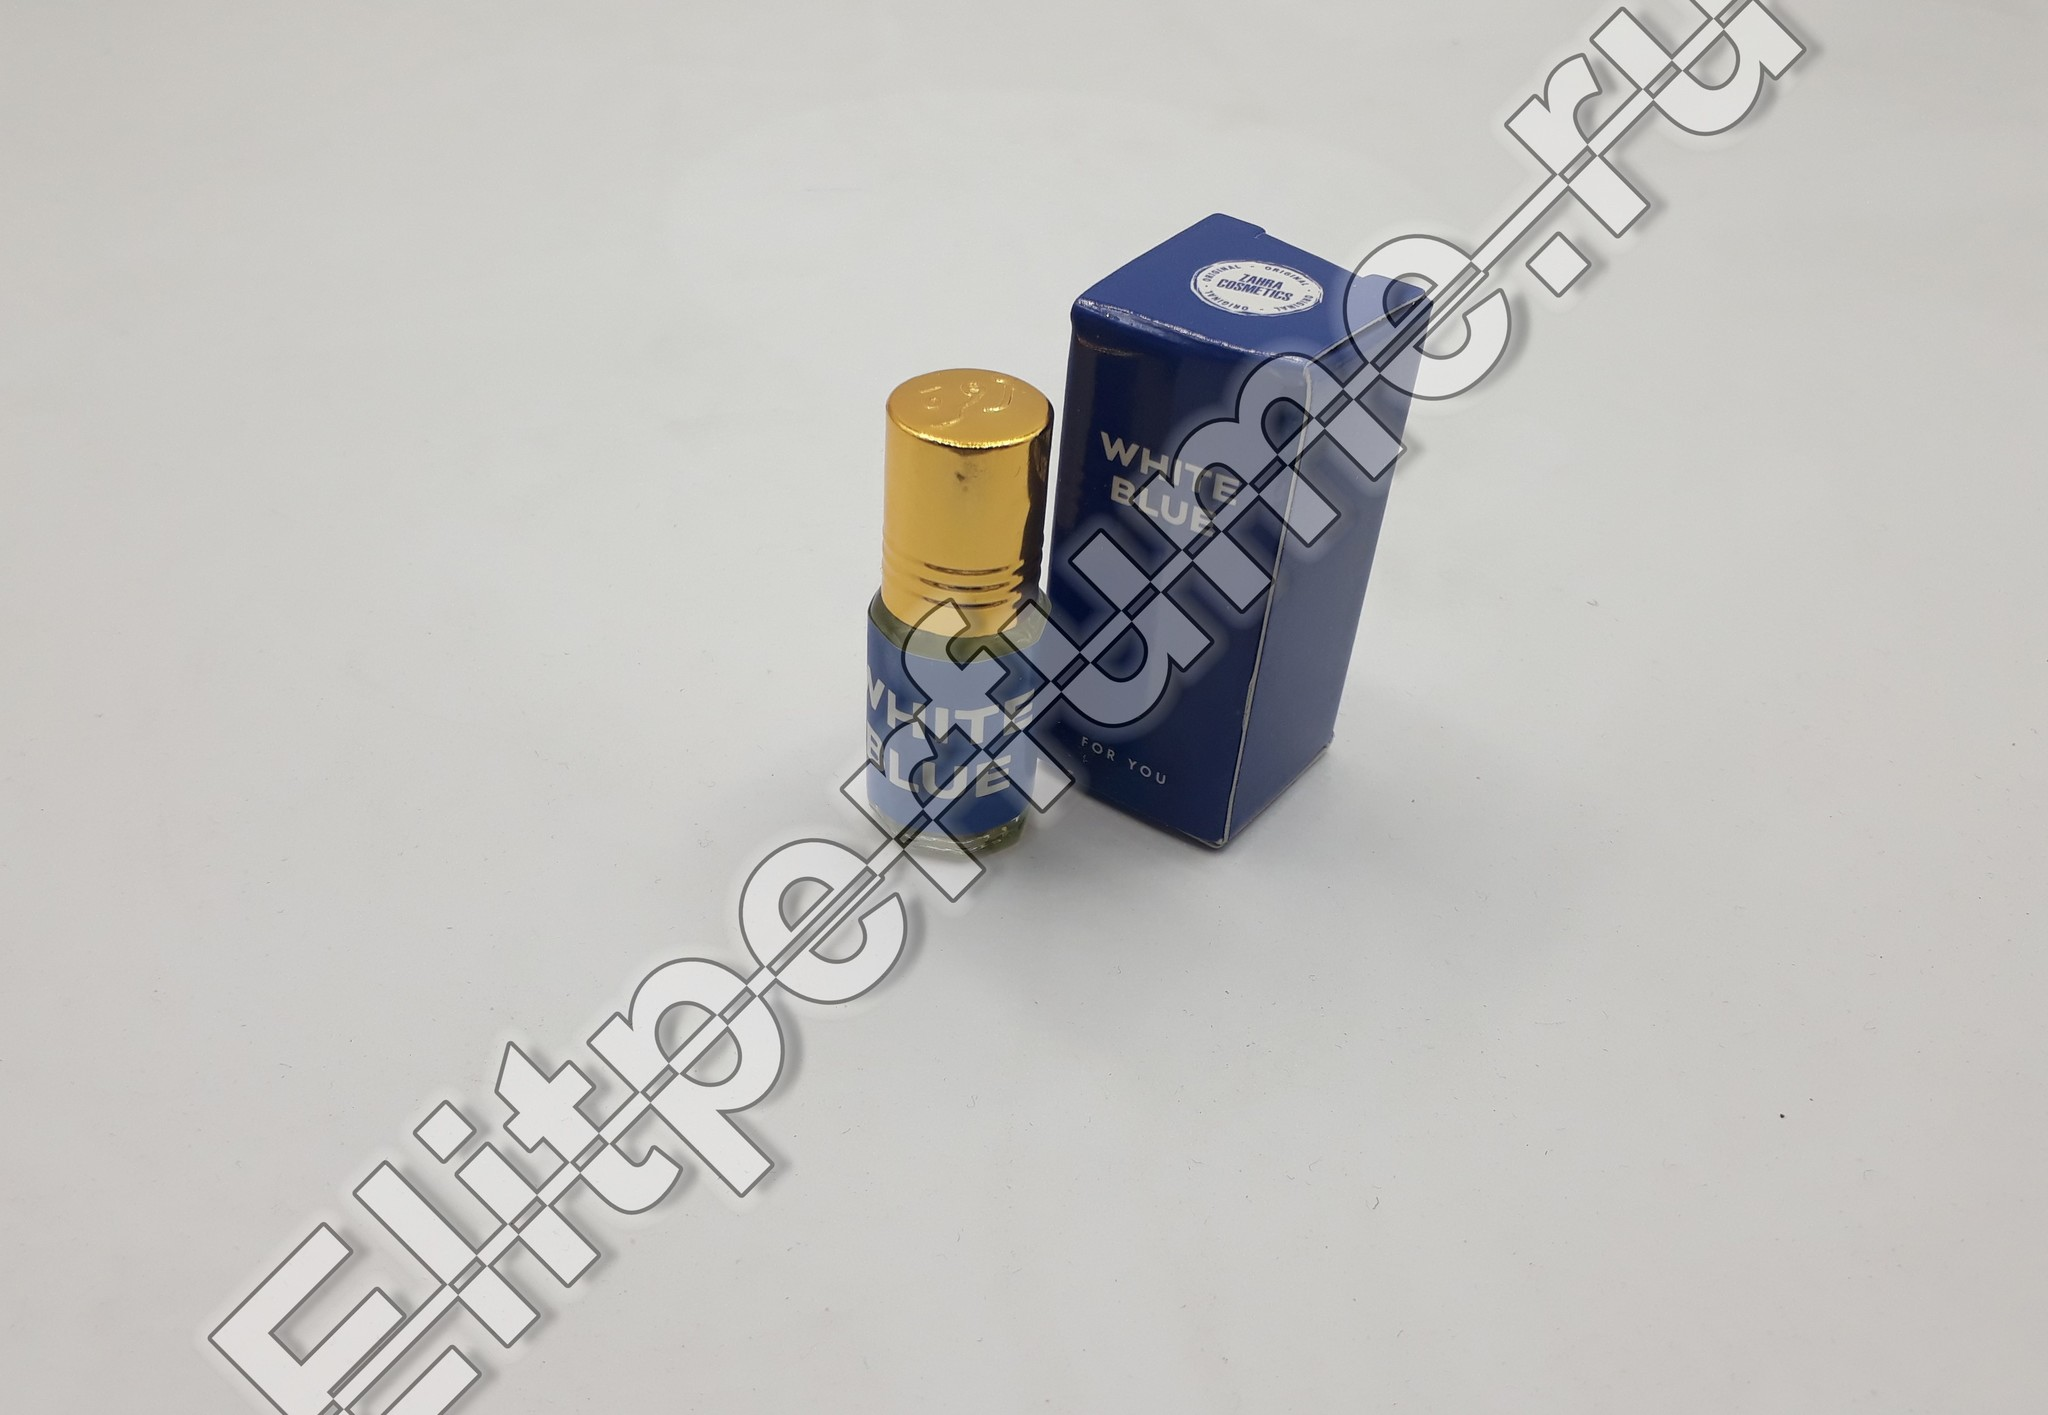 For You White Blue 3 мл арабские масляные духи от Захра Zahra Perfumes